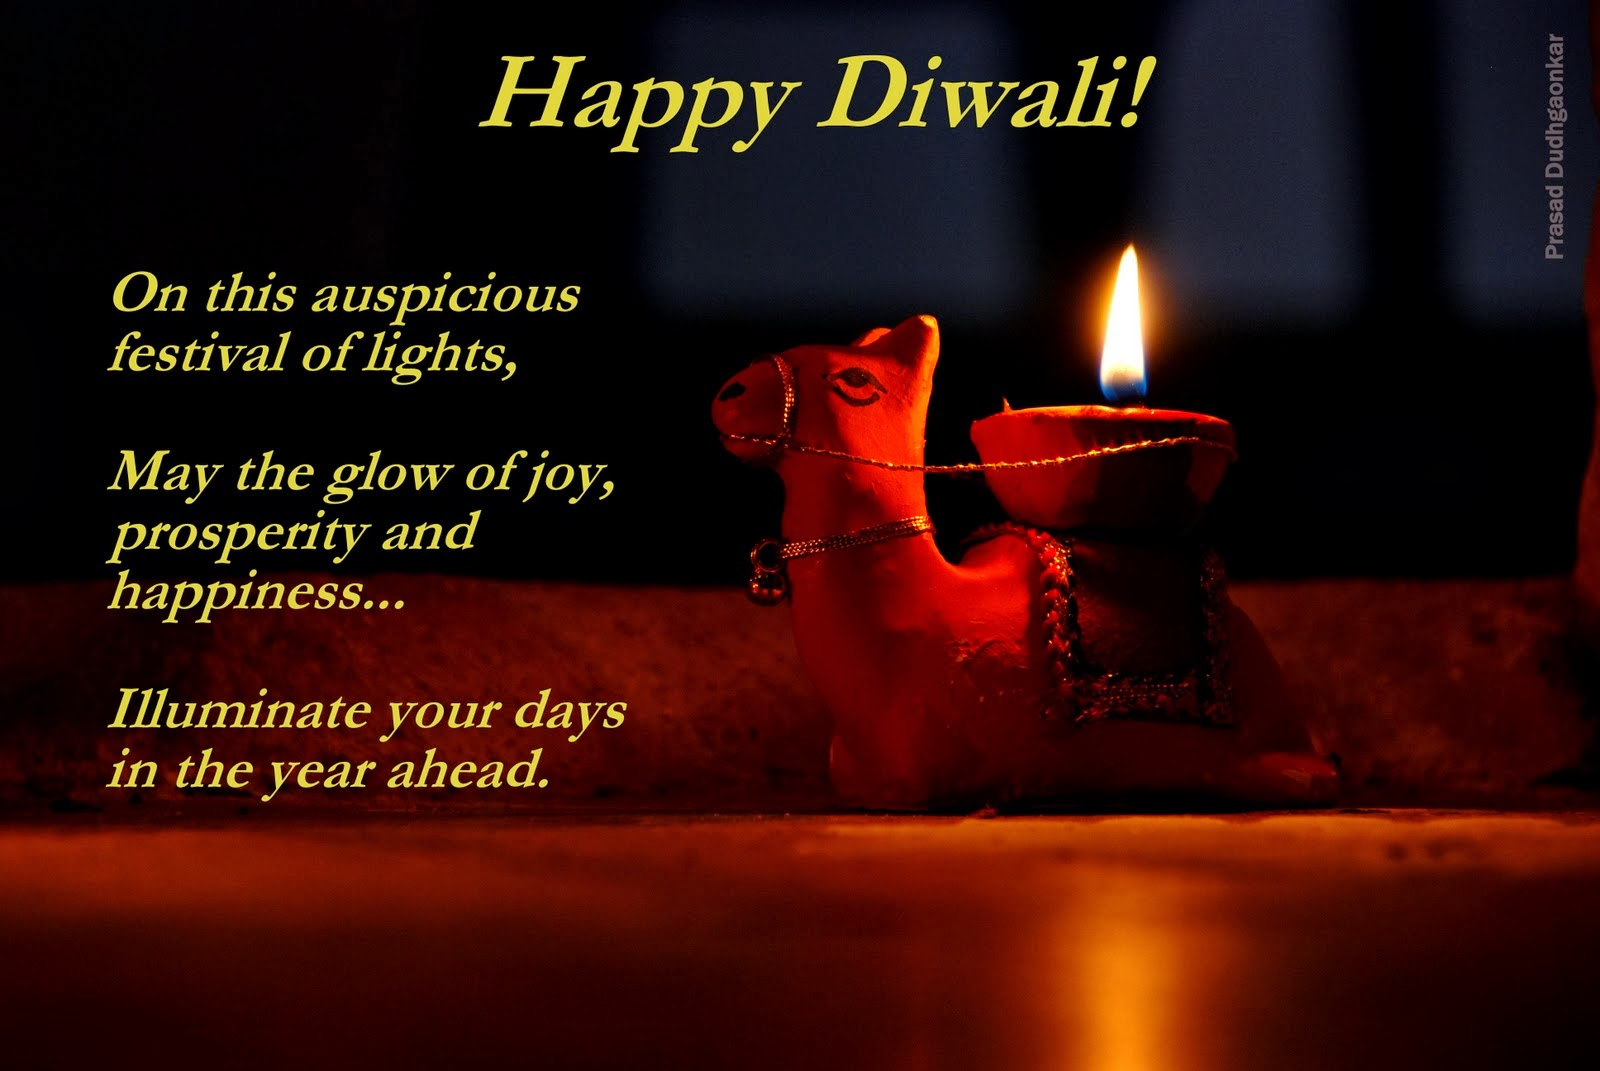 PicturesPool: Happy Diwali wishes greetings 2013